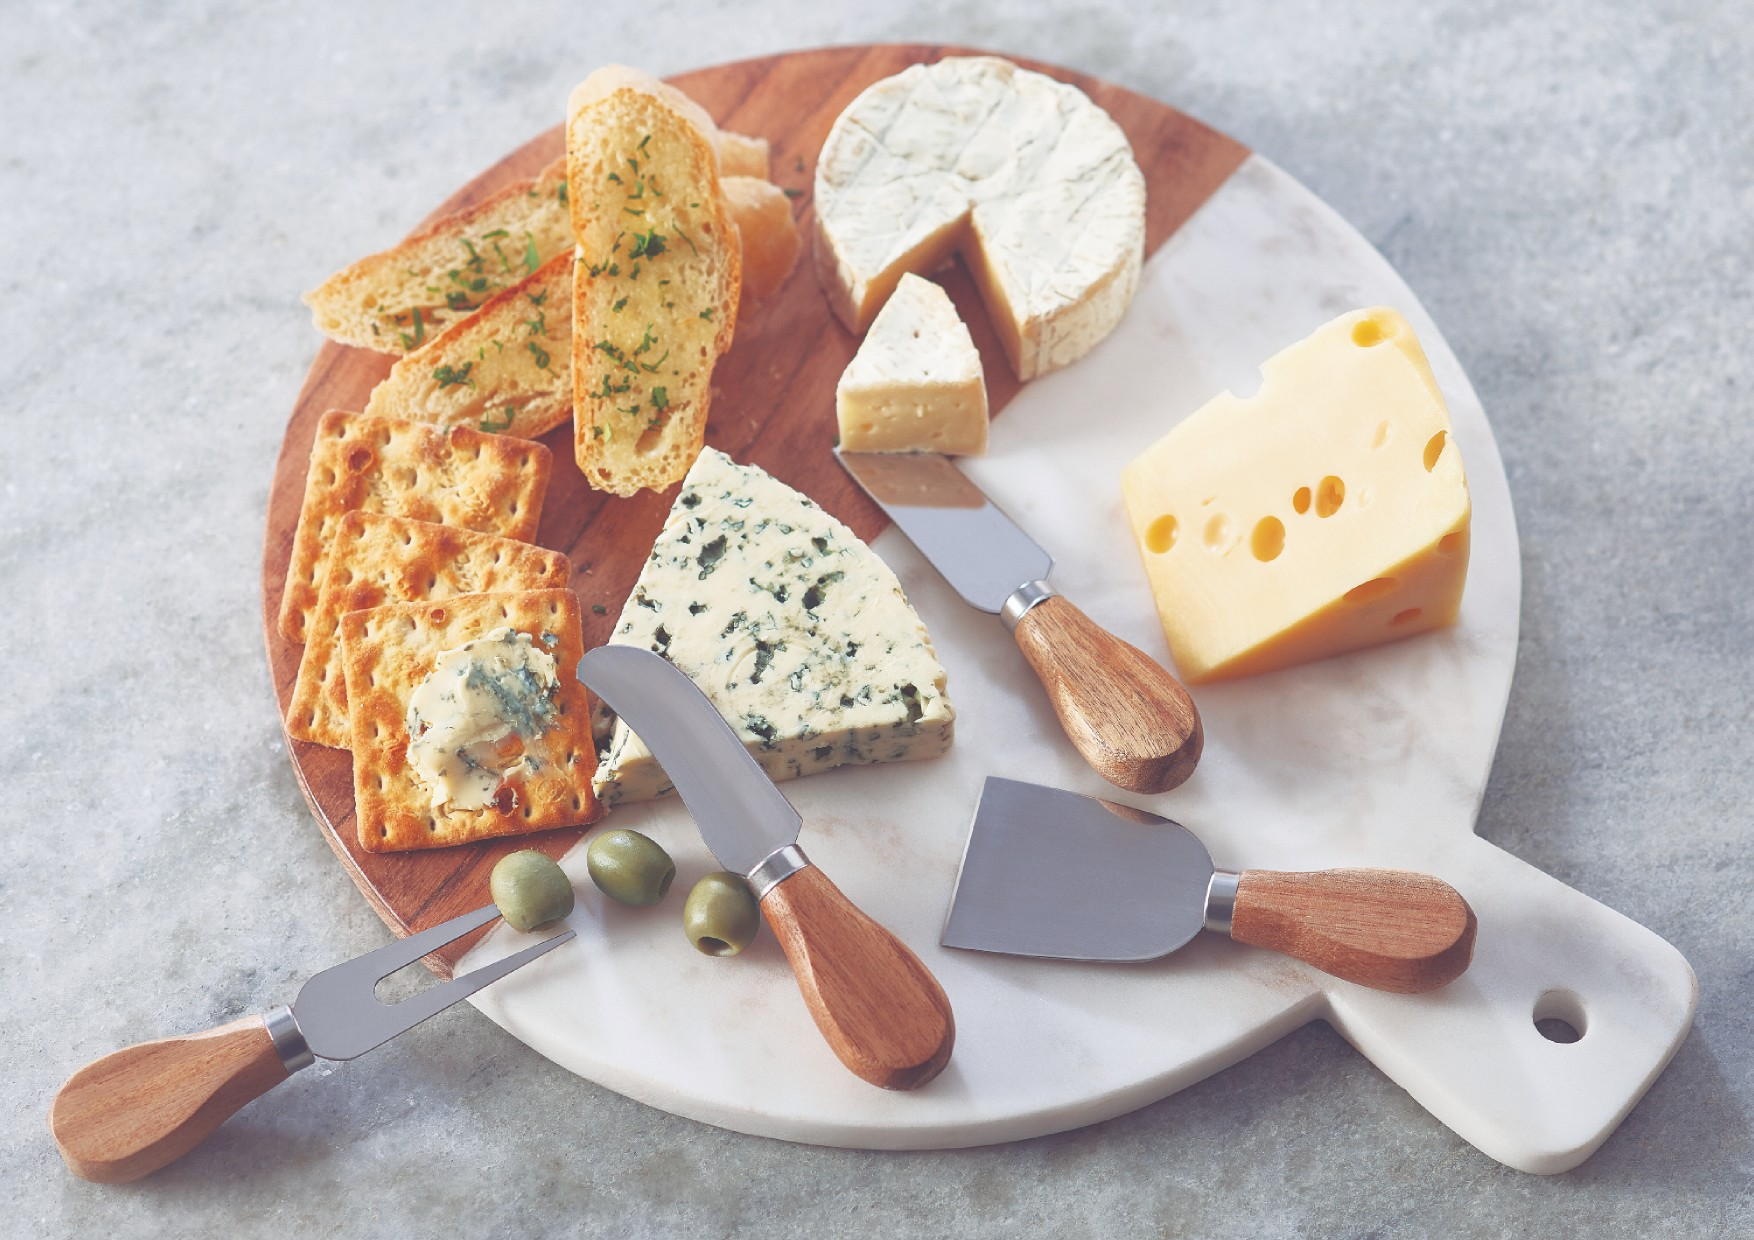 Cheese Knives Set Serving Sets in Natural Wood Colour by Songbird